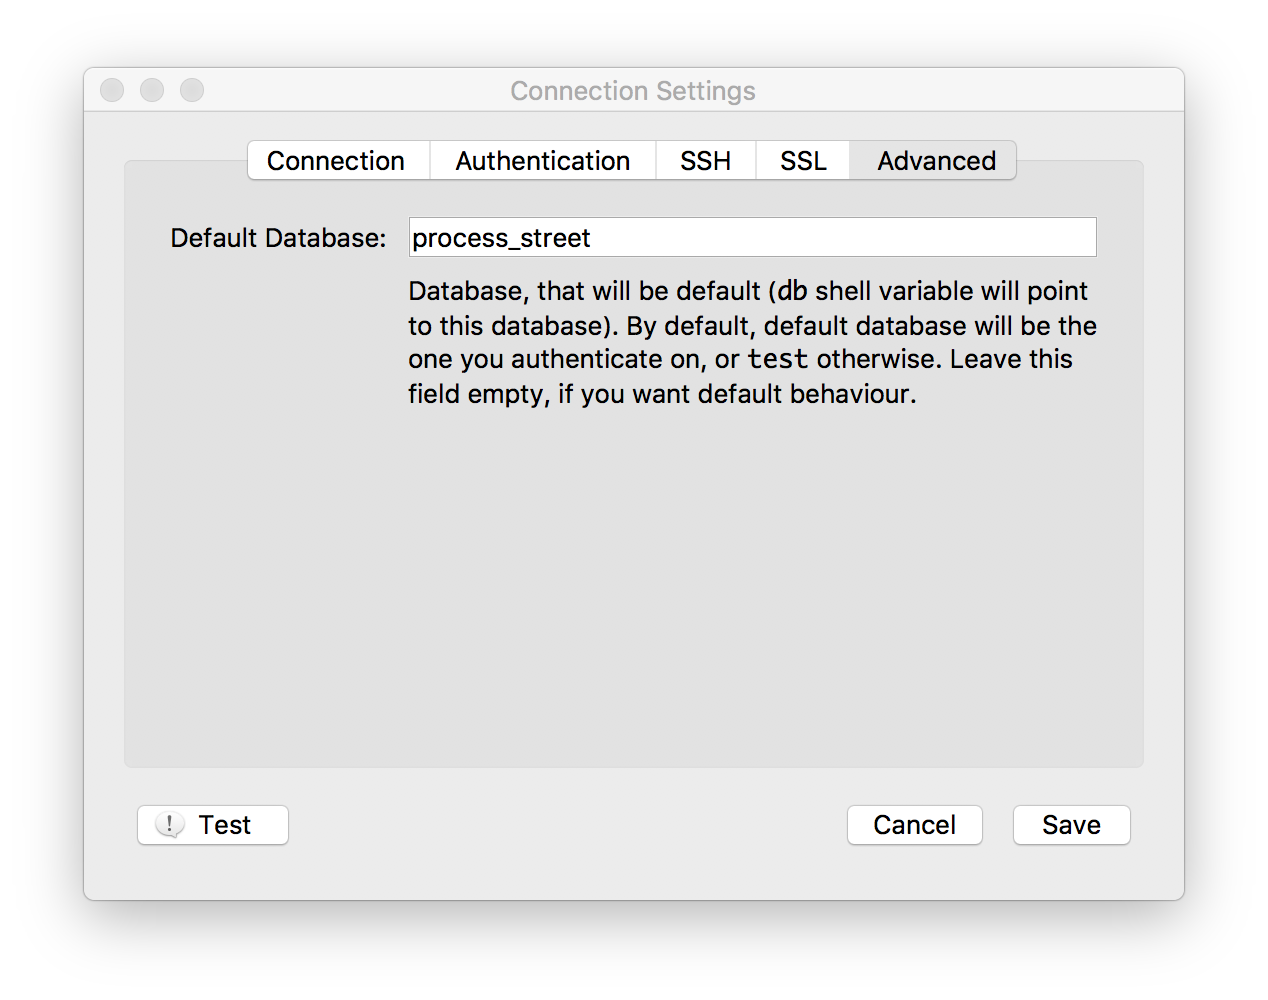 ...and set the default database like so. Then save.